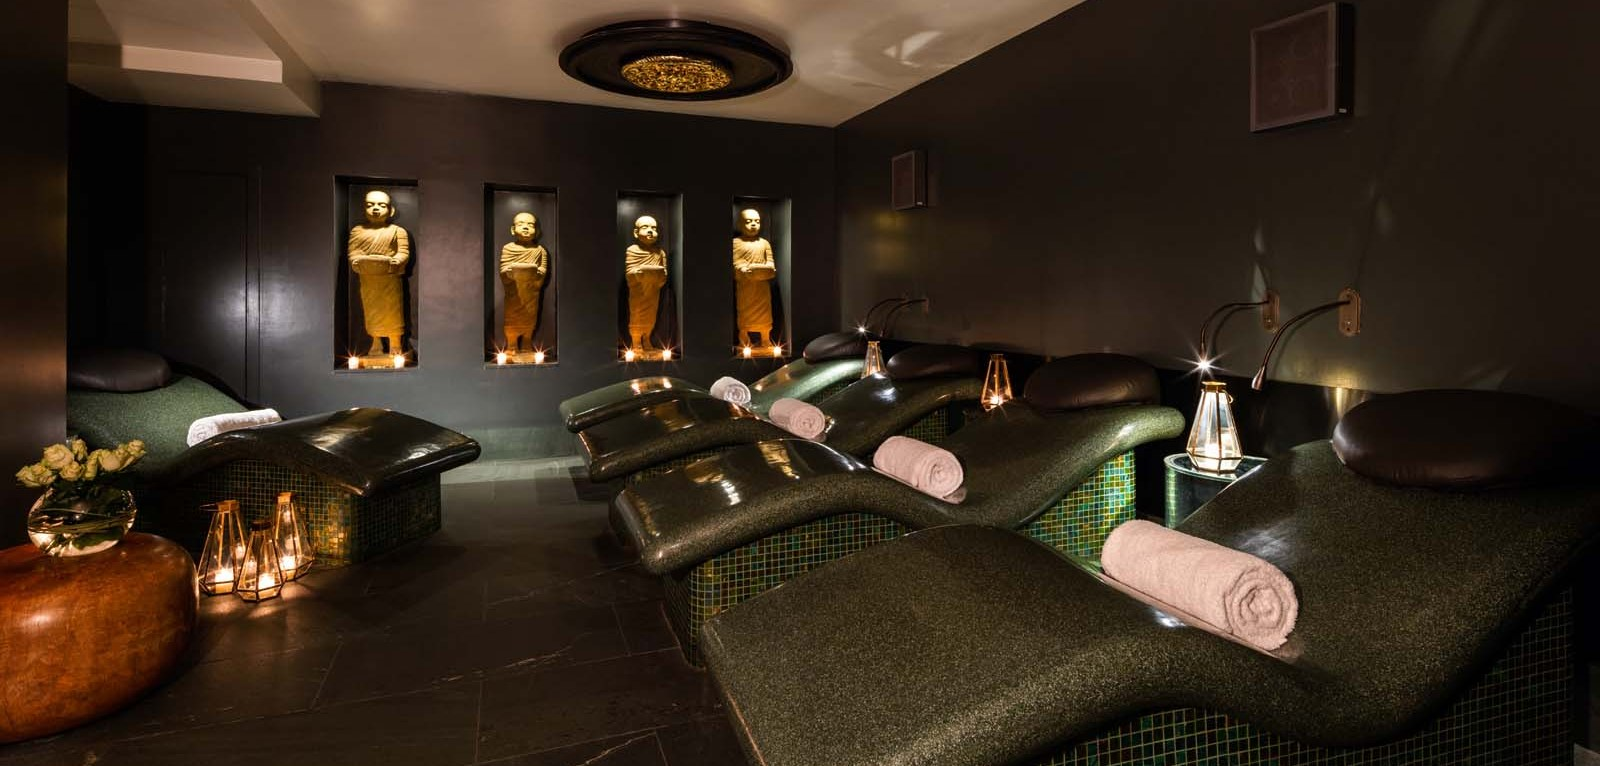 The_May_Fair_Spa__relaxation_room1600x1067.jpg